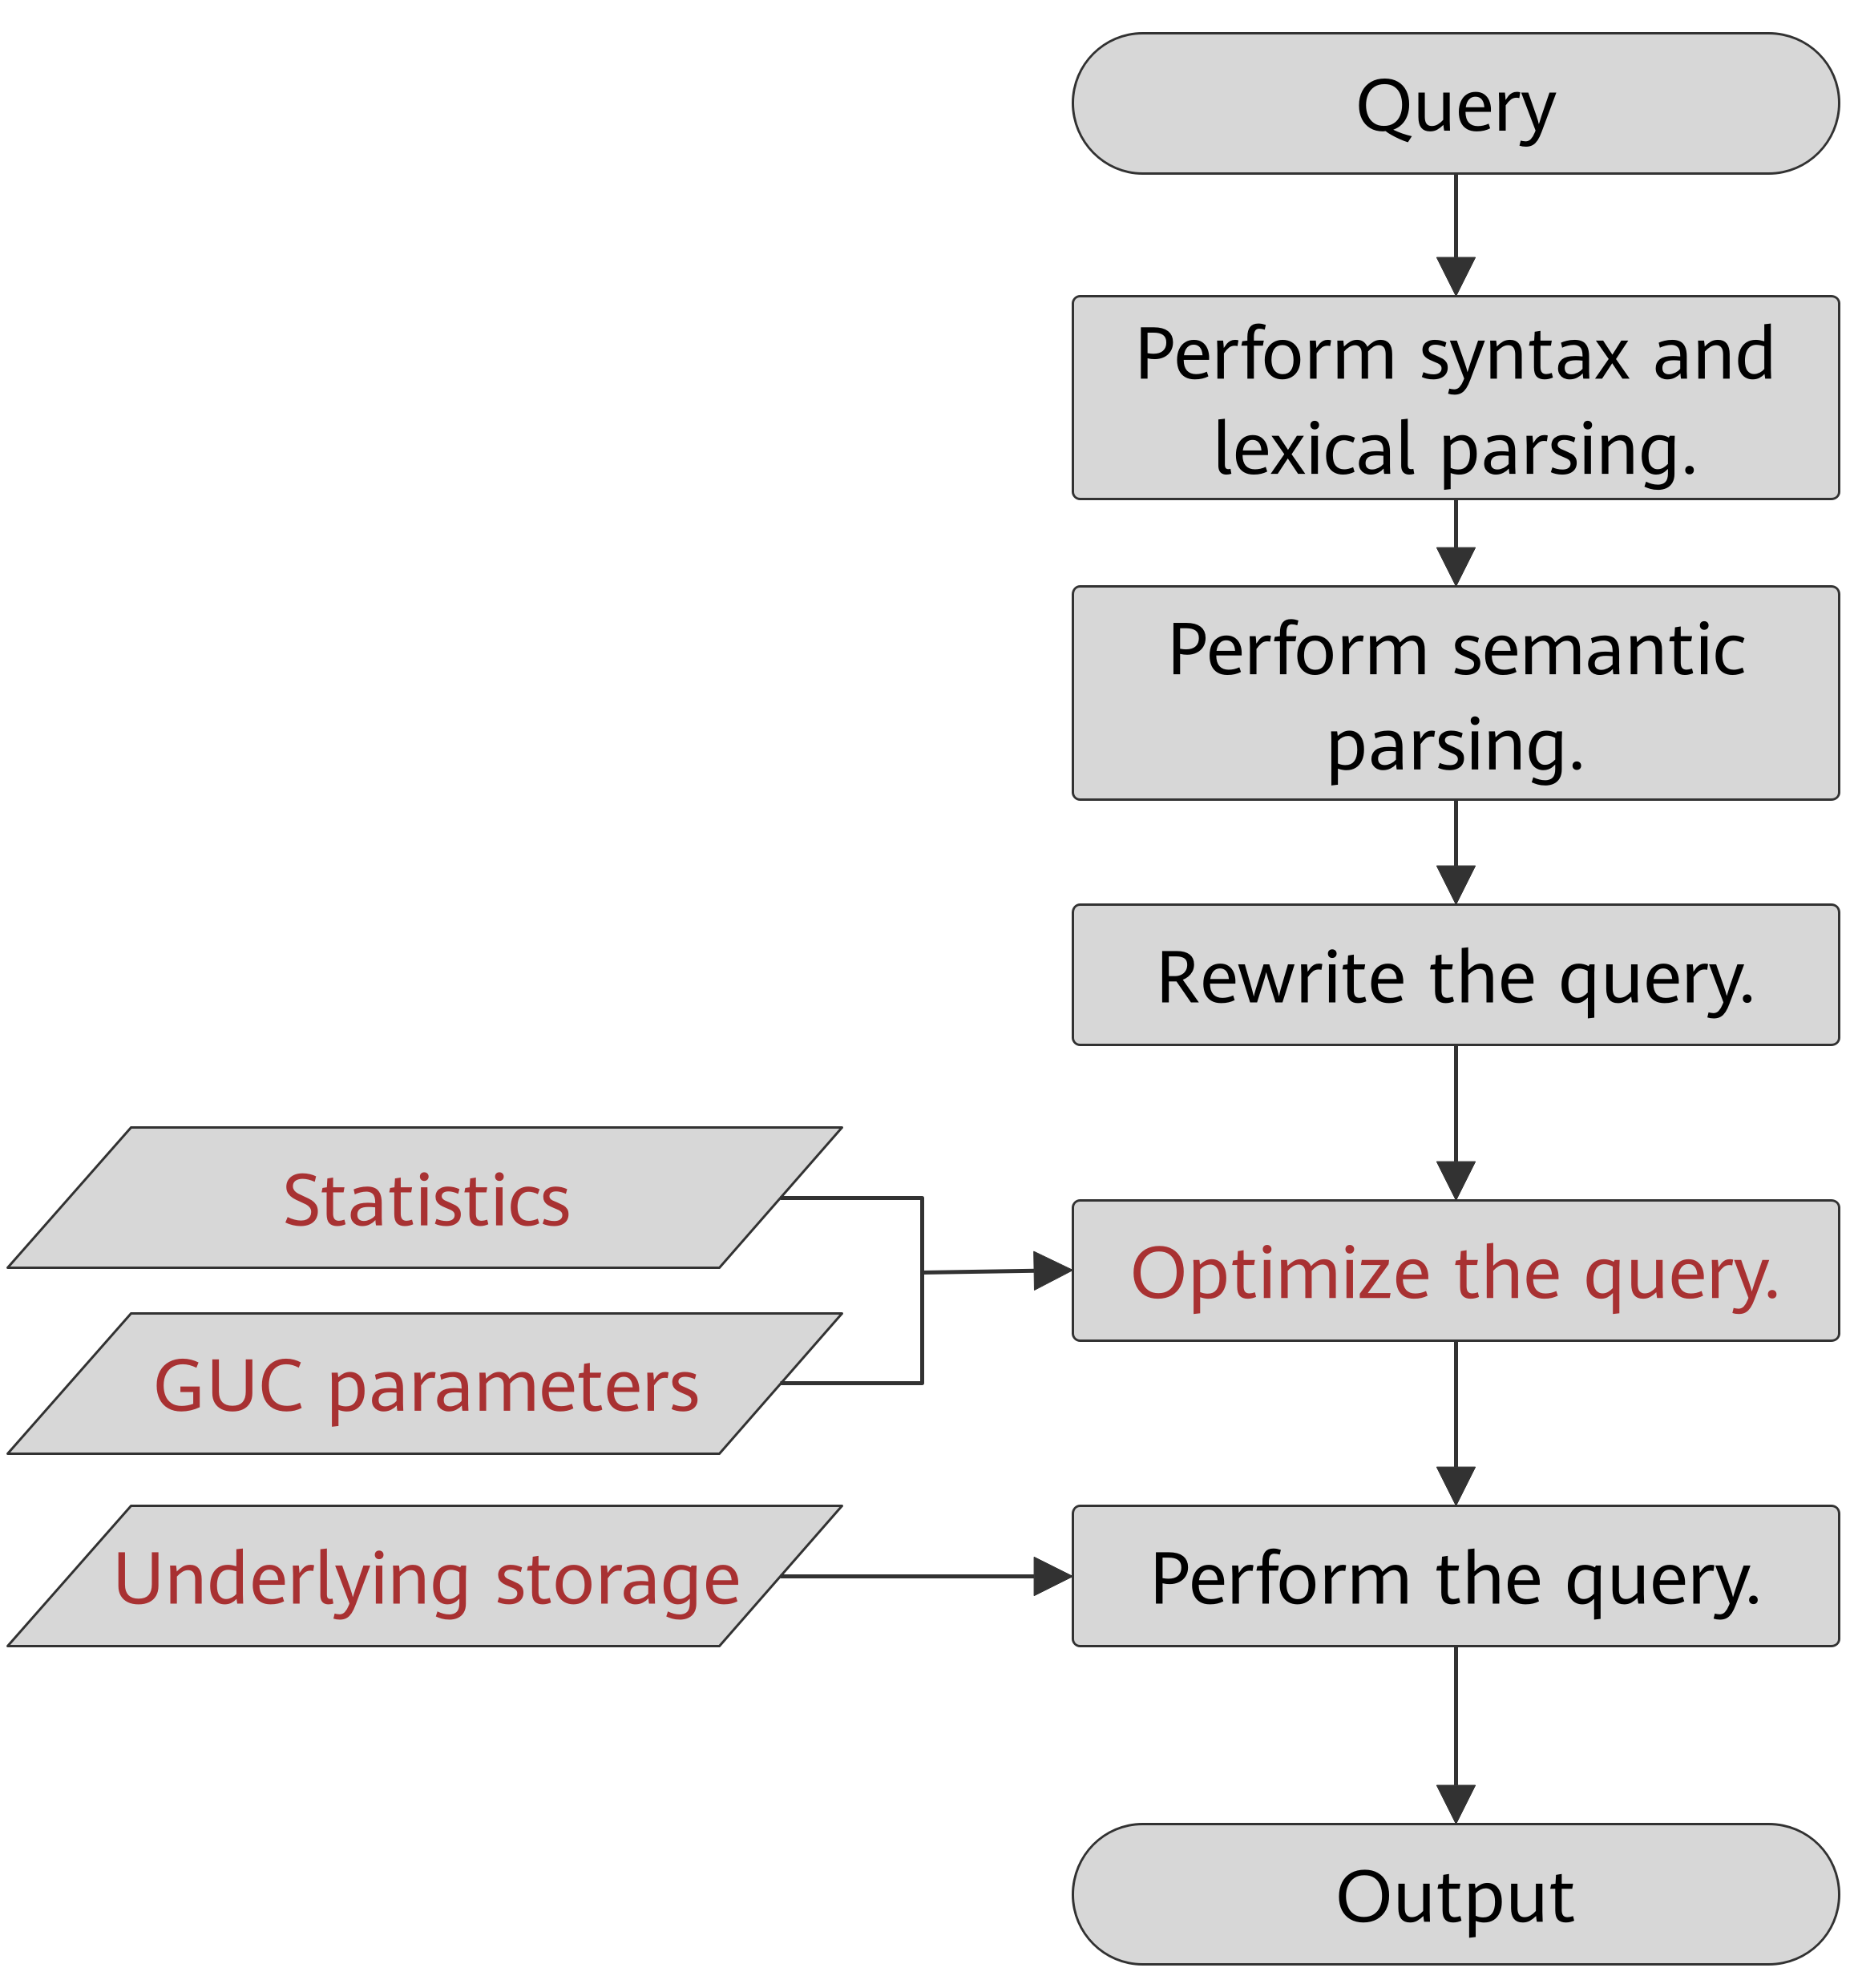 execution-process-of-query-related-sql-statements-by-the-sql-engine